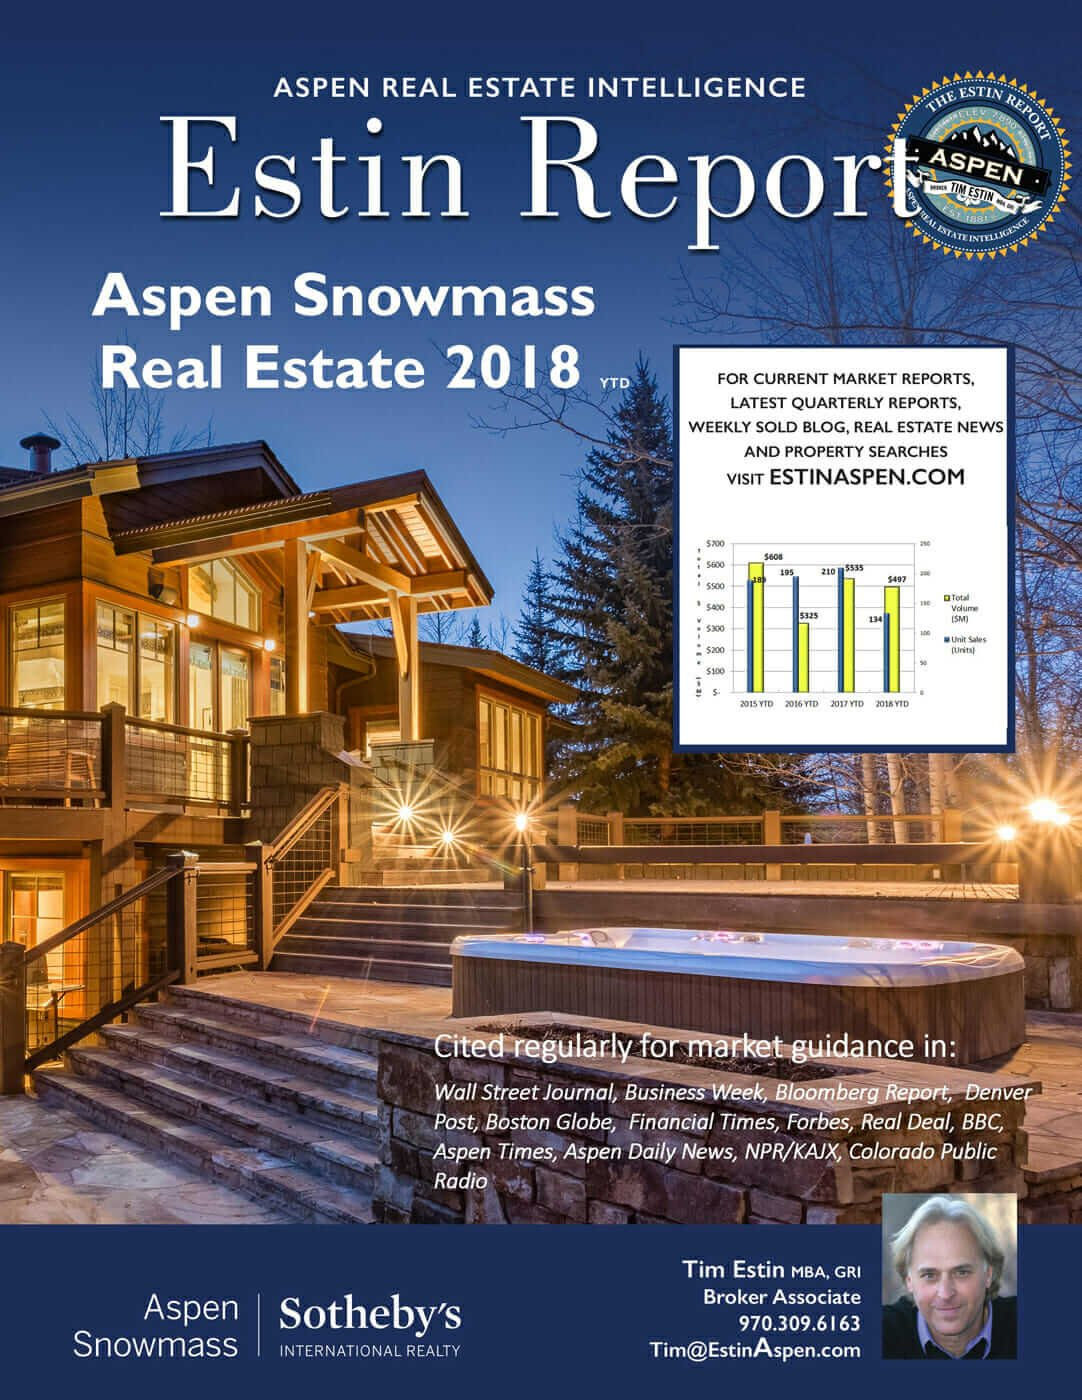 Estin Report: Aspen Snowmass Real Estate Market 2018 YTD and 2017 YR Image